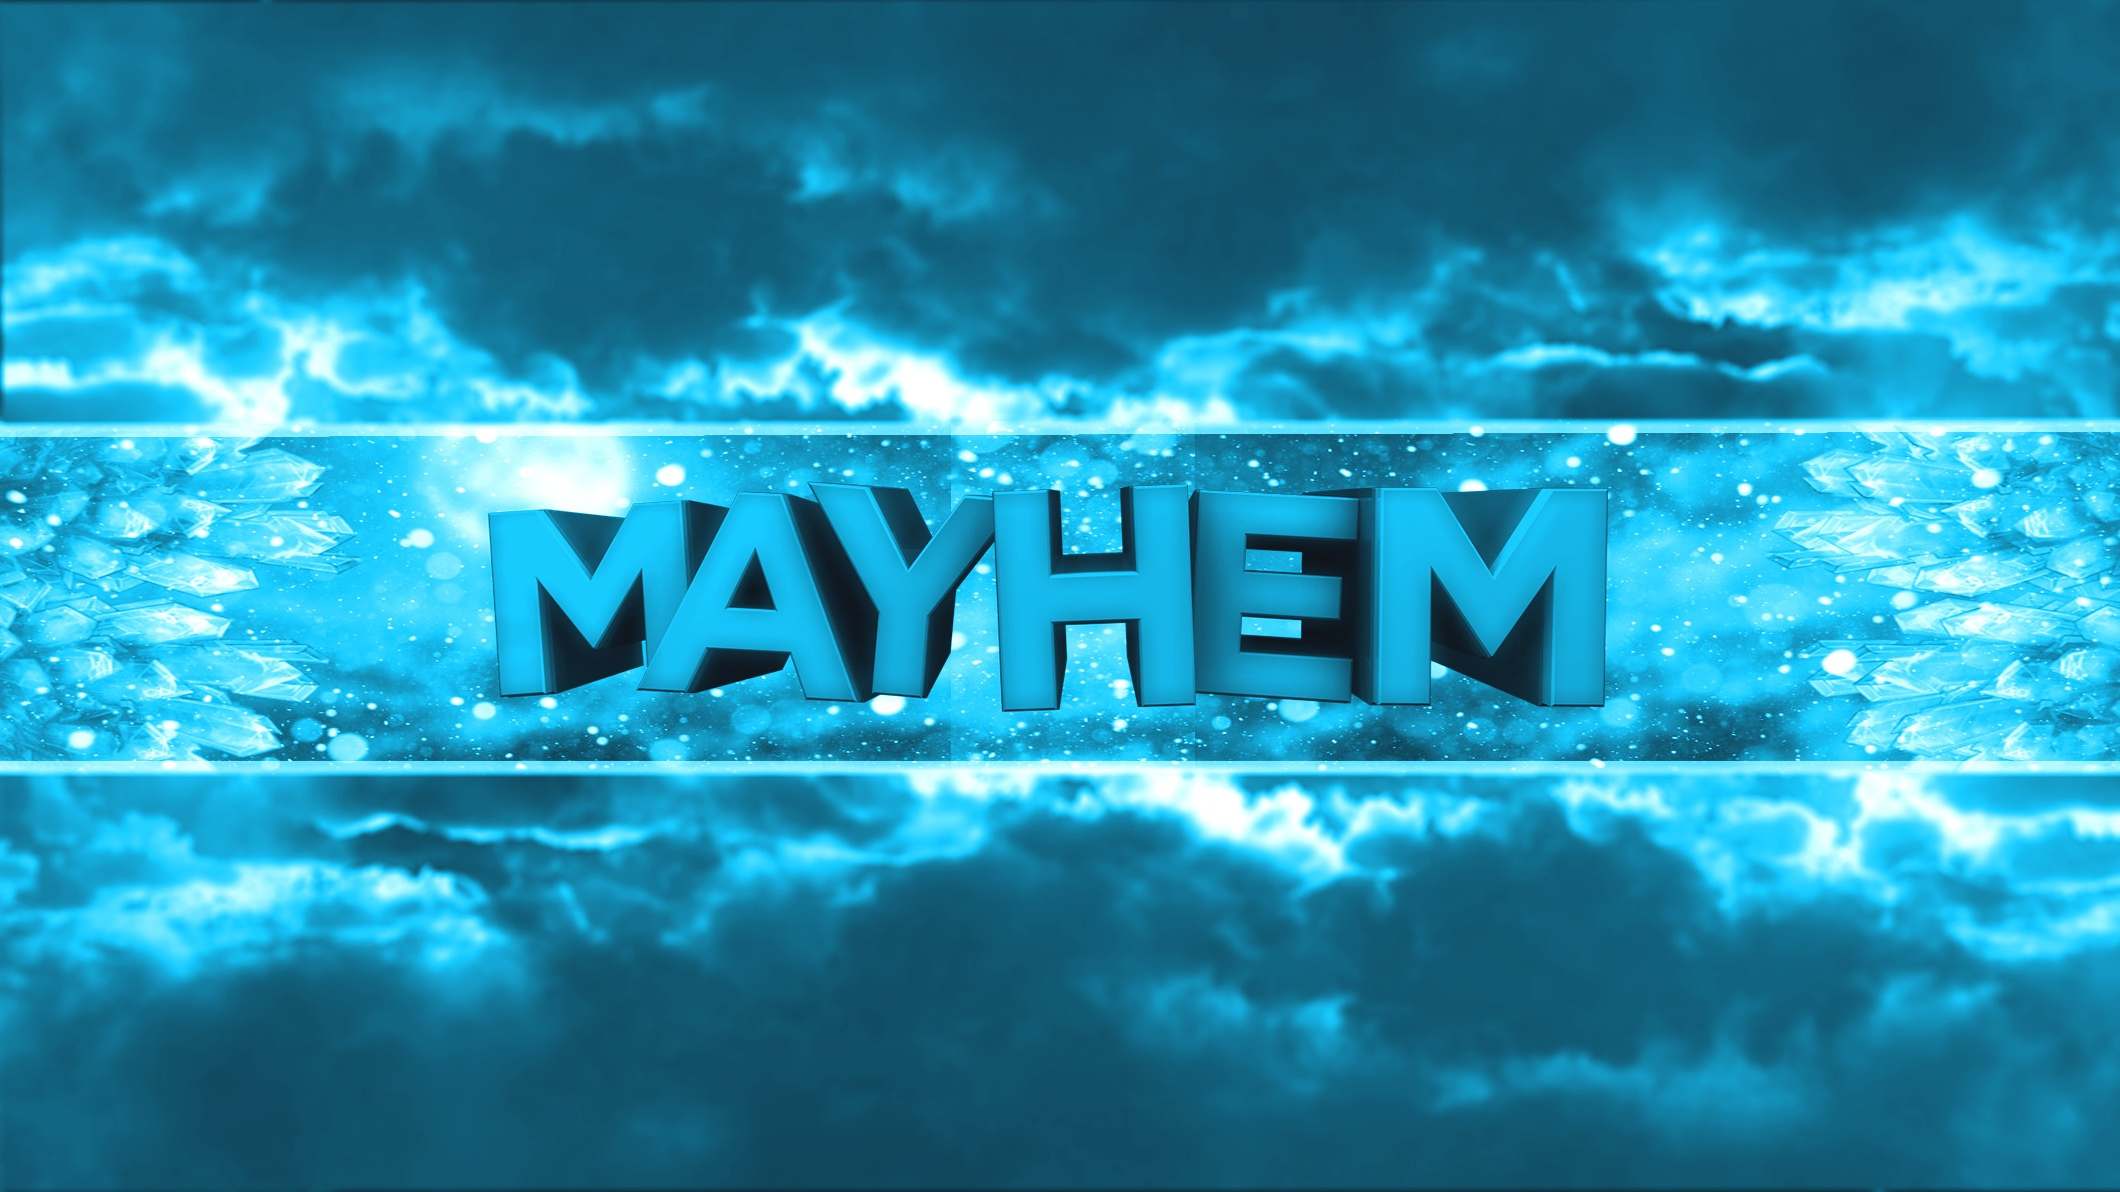 What Is My Paypal Email >> Dope! Youtube Banner or Avi! | Mayhem - Sellfy.com